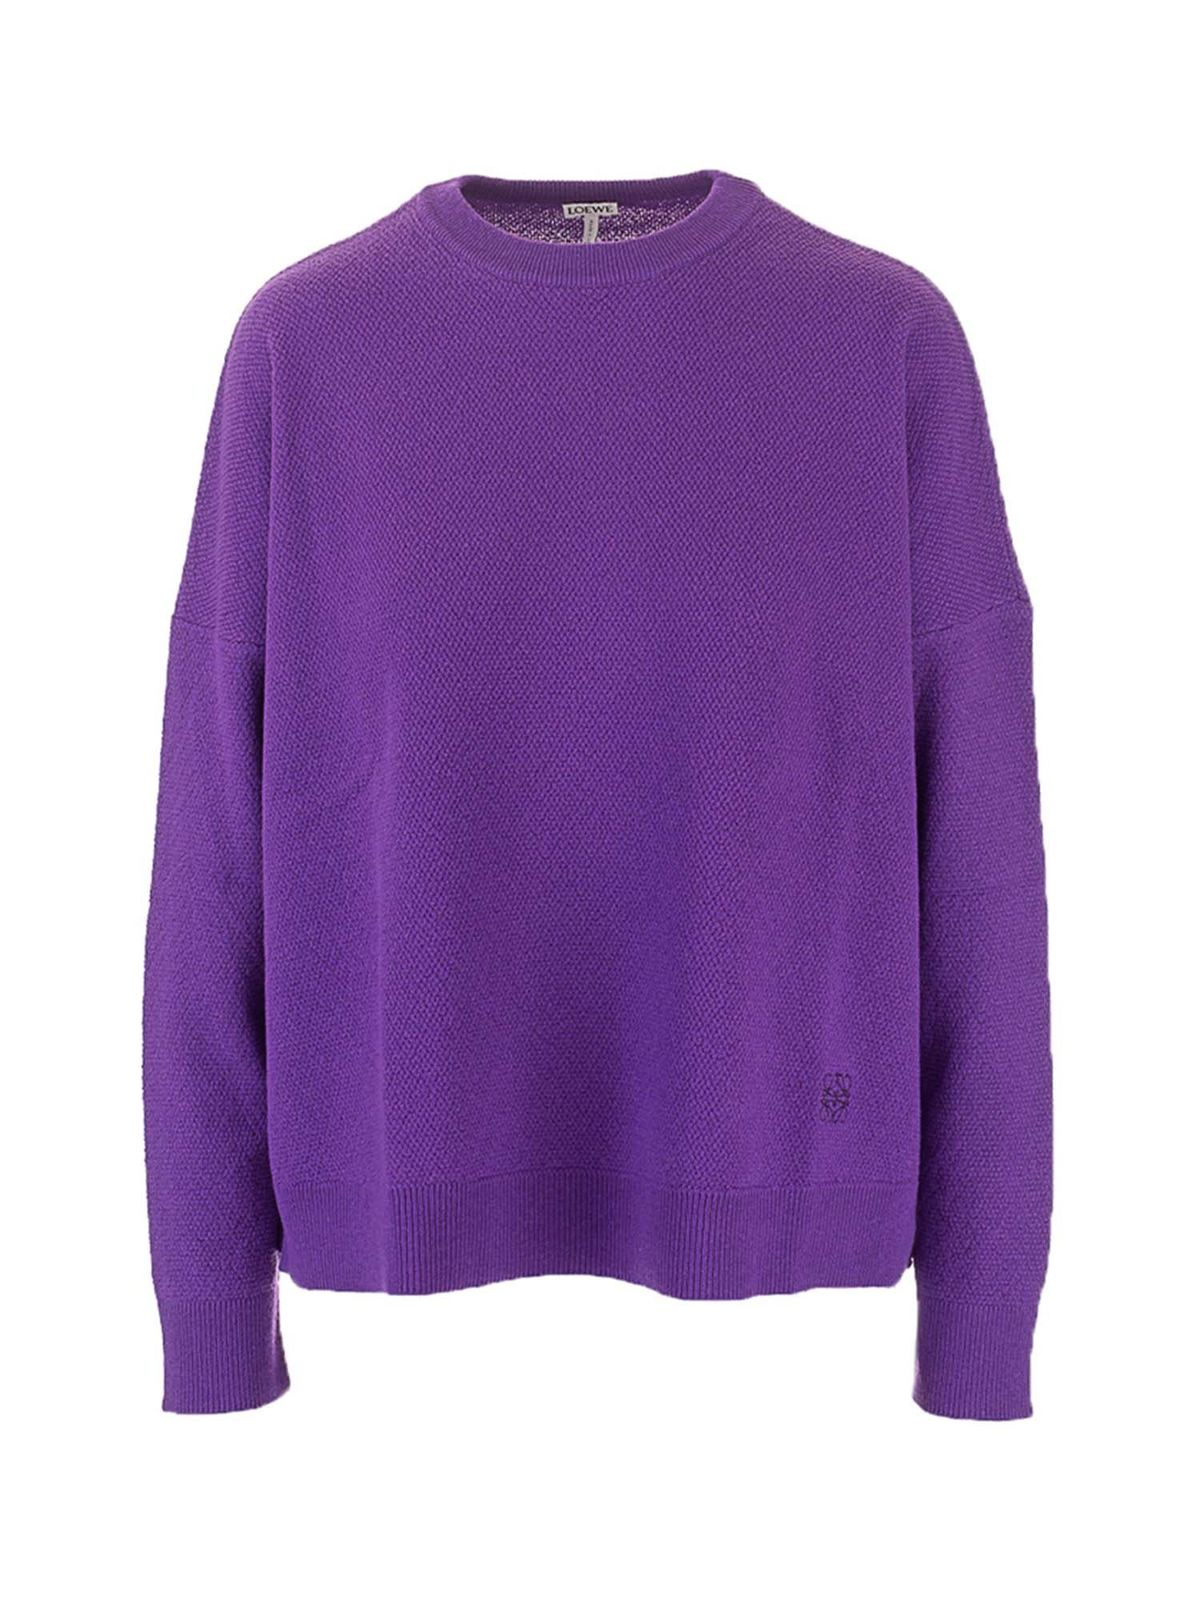 Loewe CASHMERE SWEATER IN VIOLET